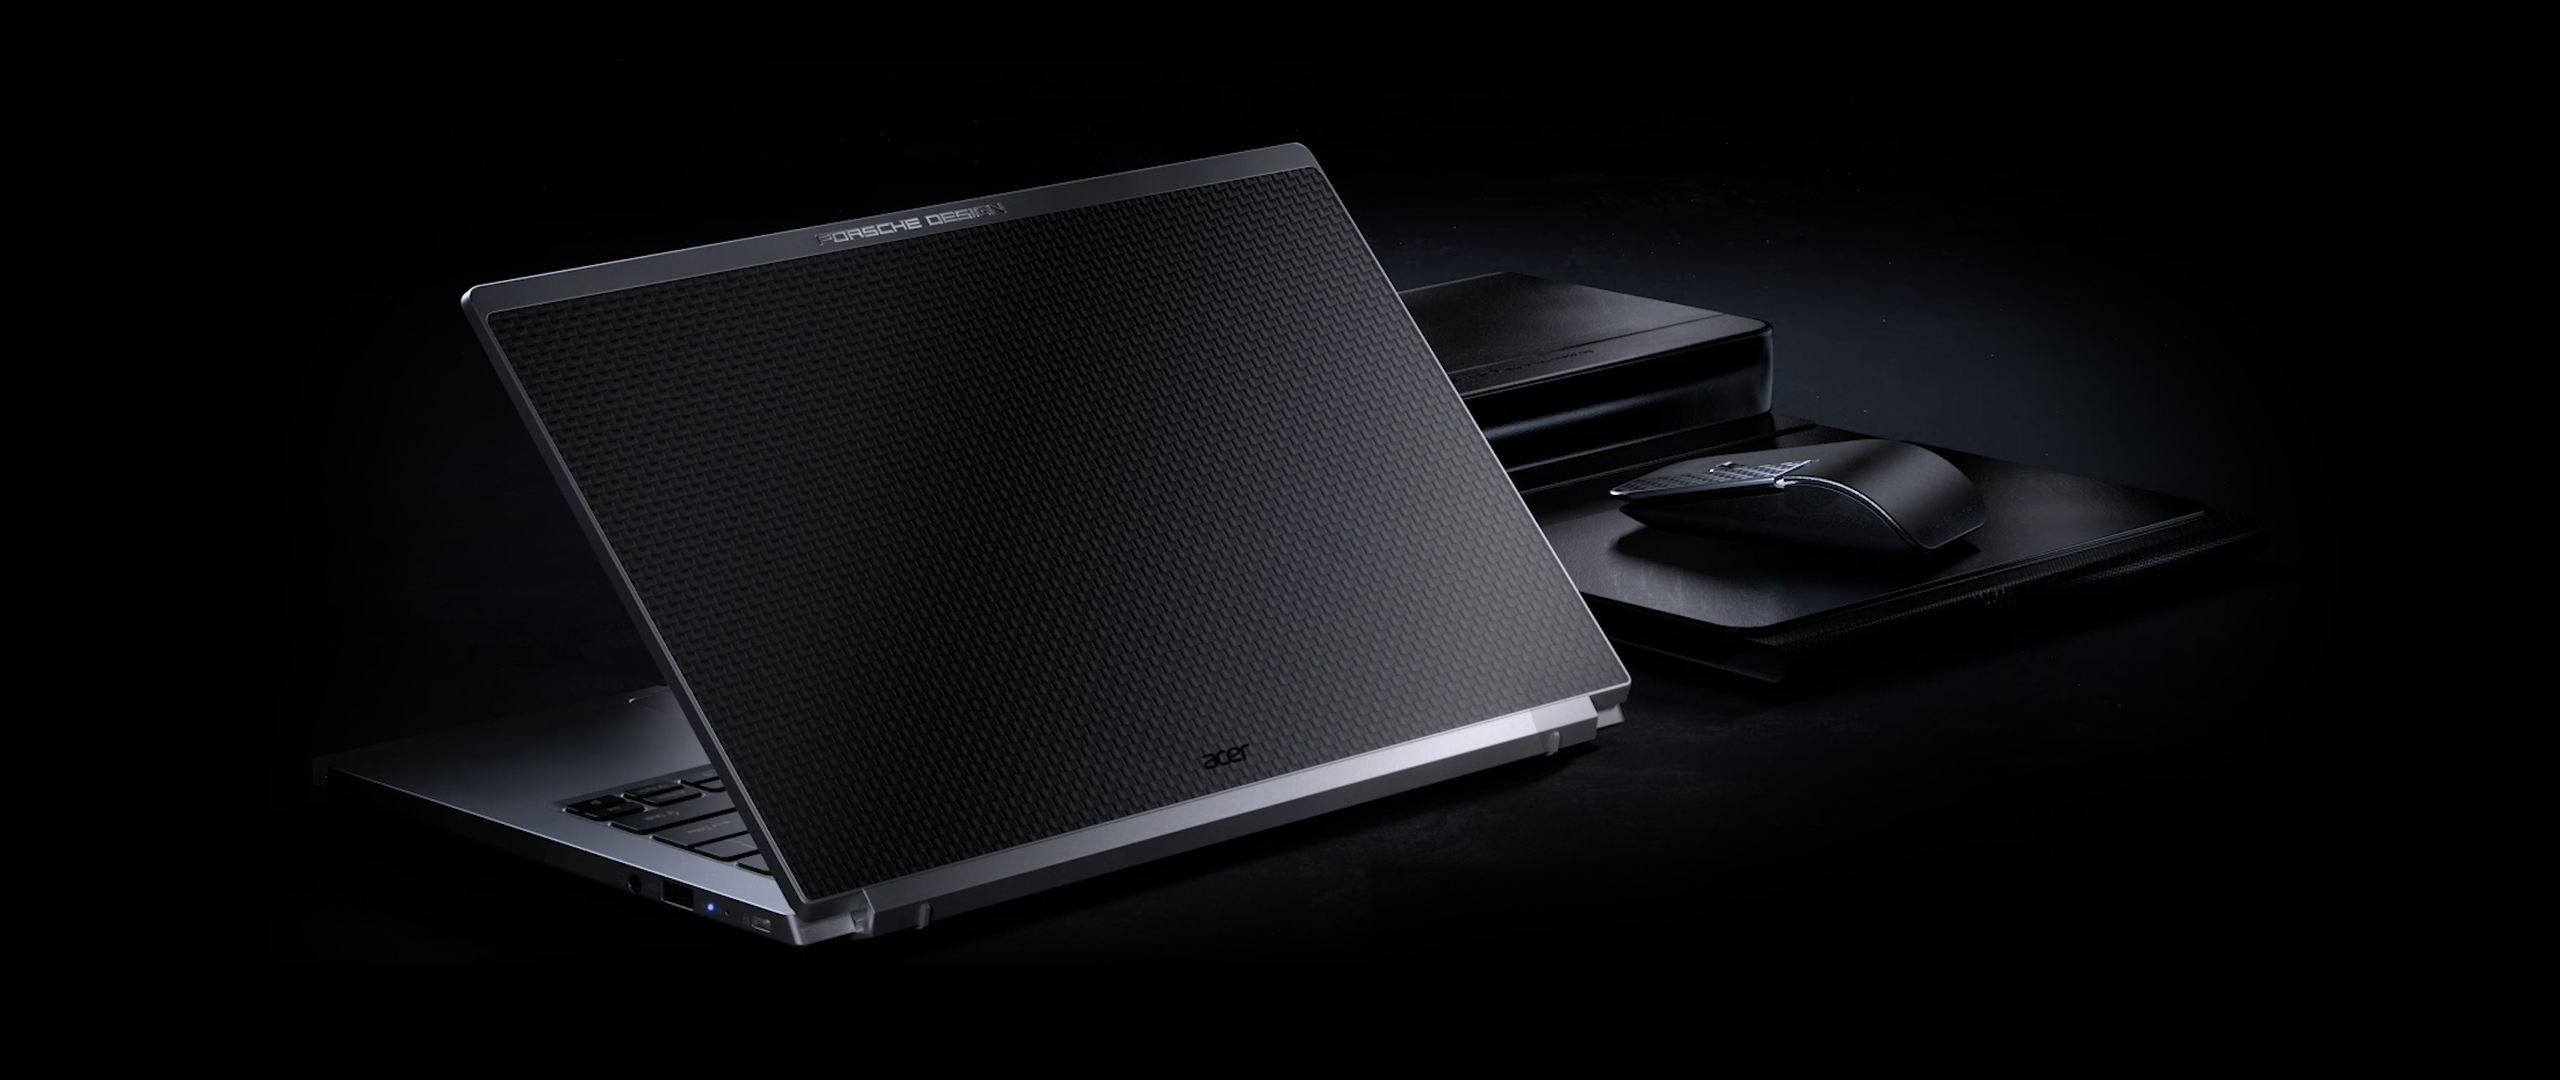 The Porsche Design Acer Book RS